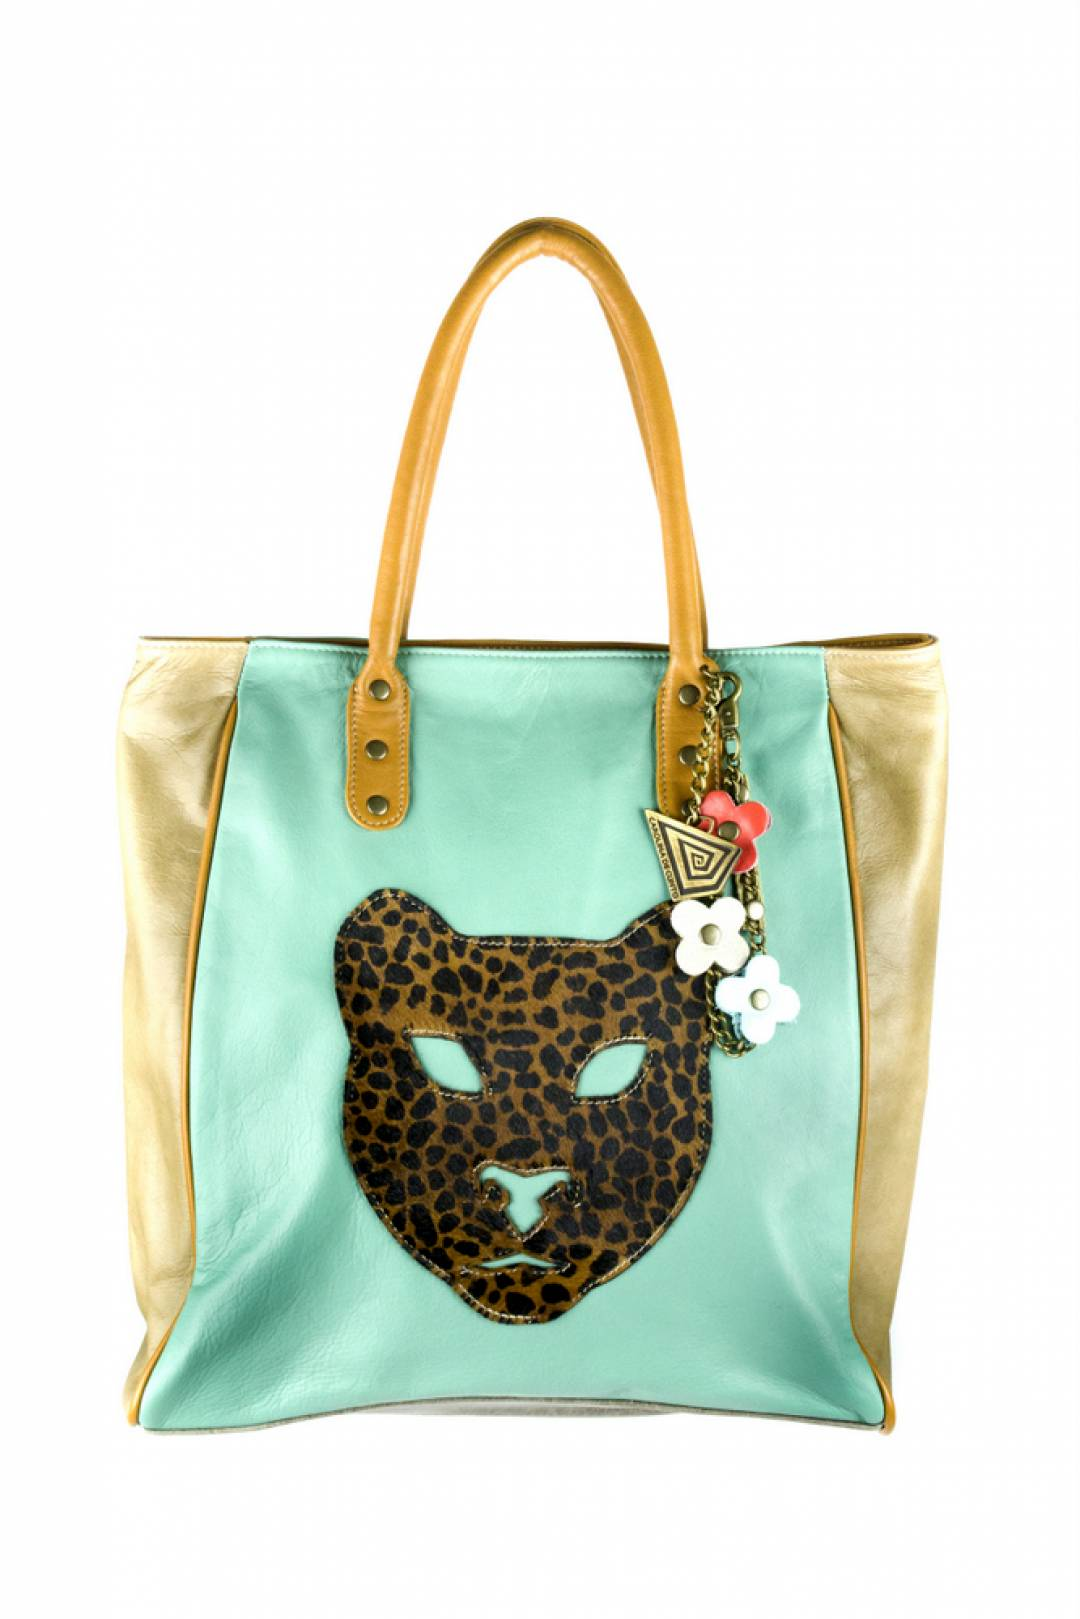 Julieta leather tote with animal print ornament.